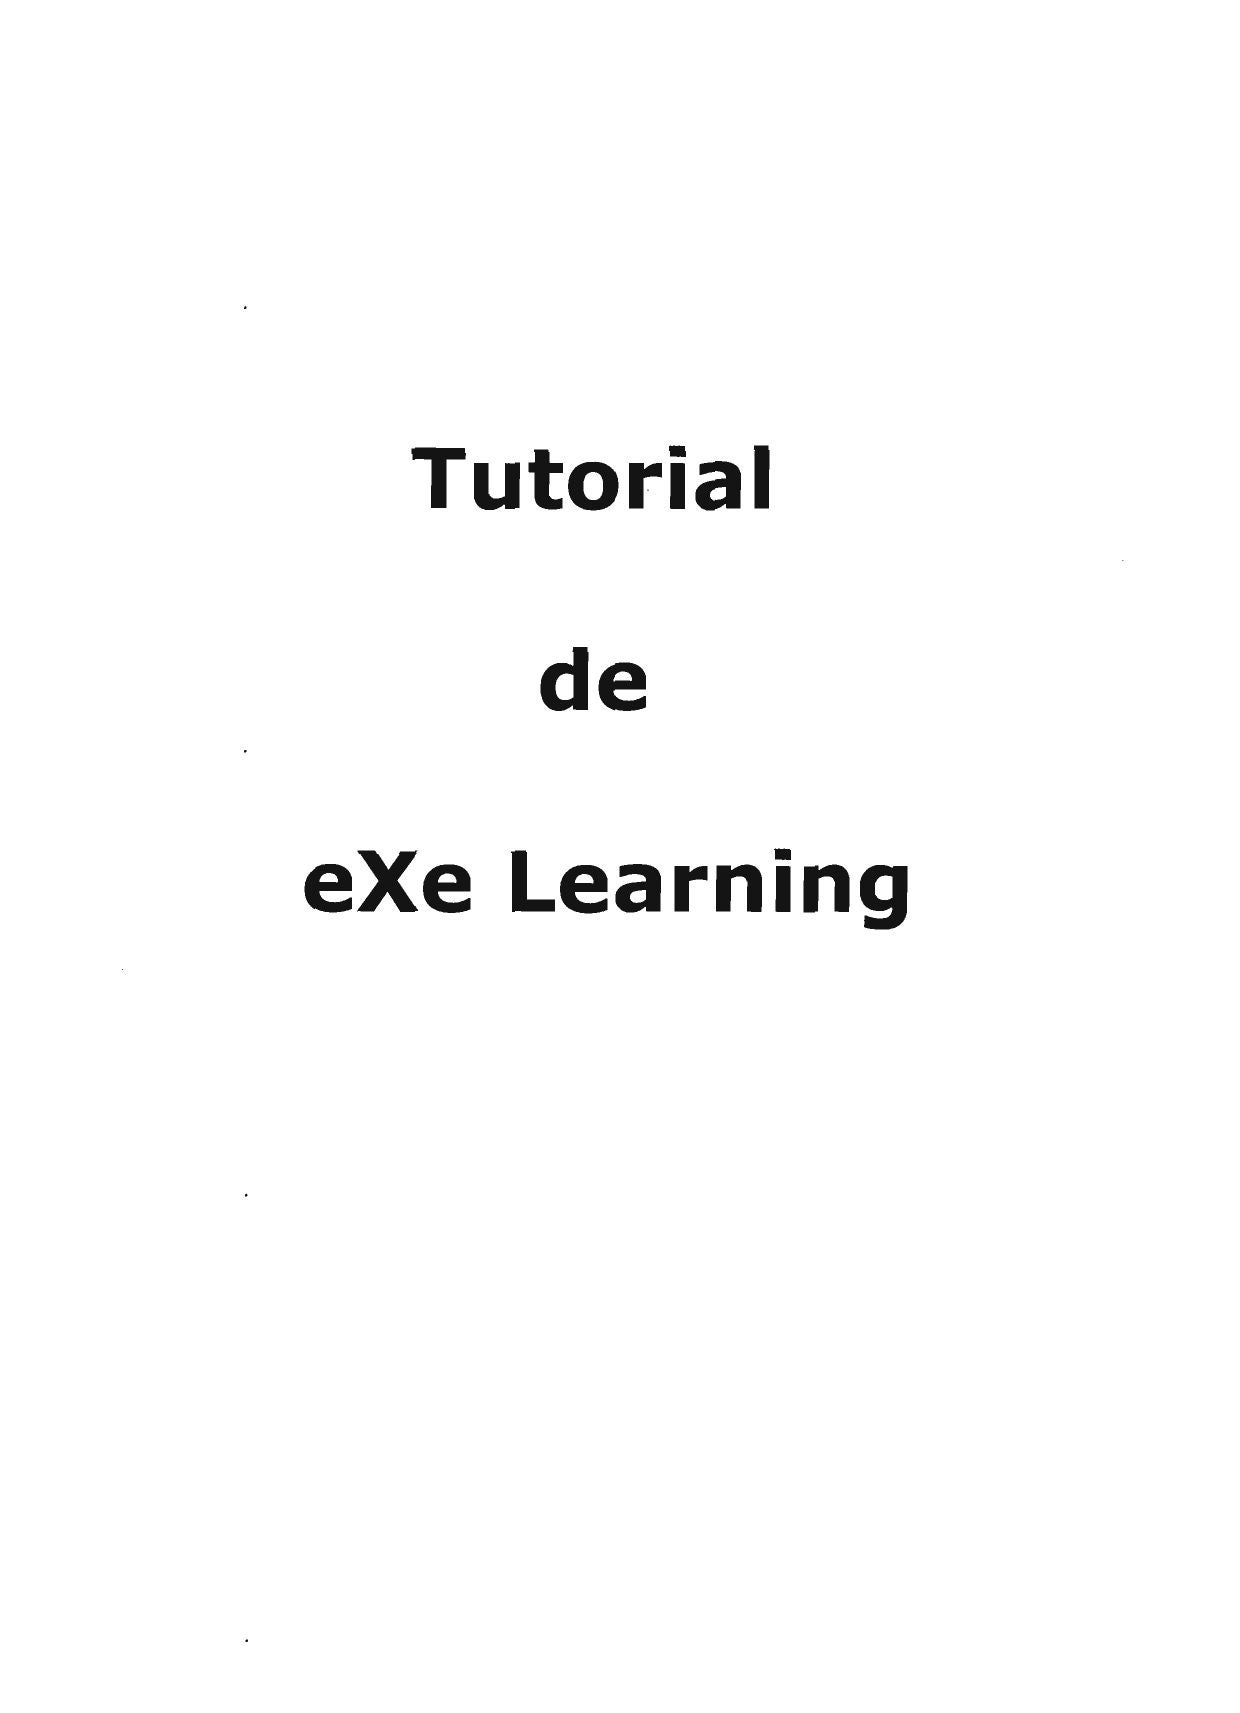 Tutorial eXe Learning by Francisco Garcia - issuu